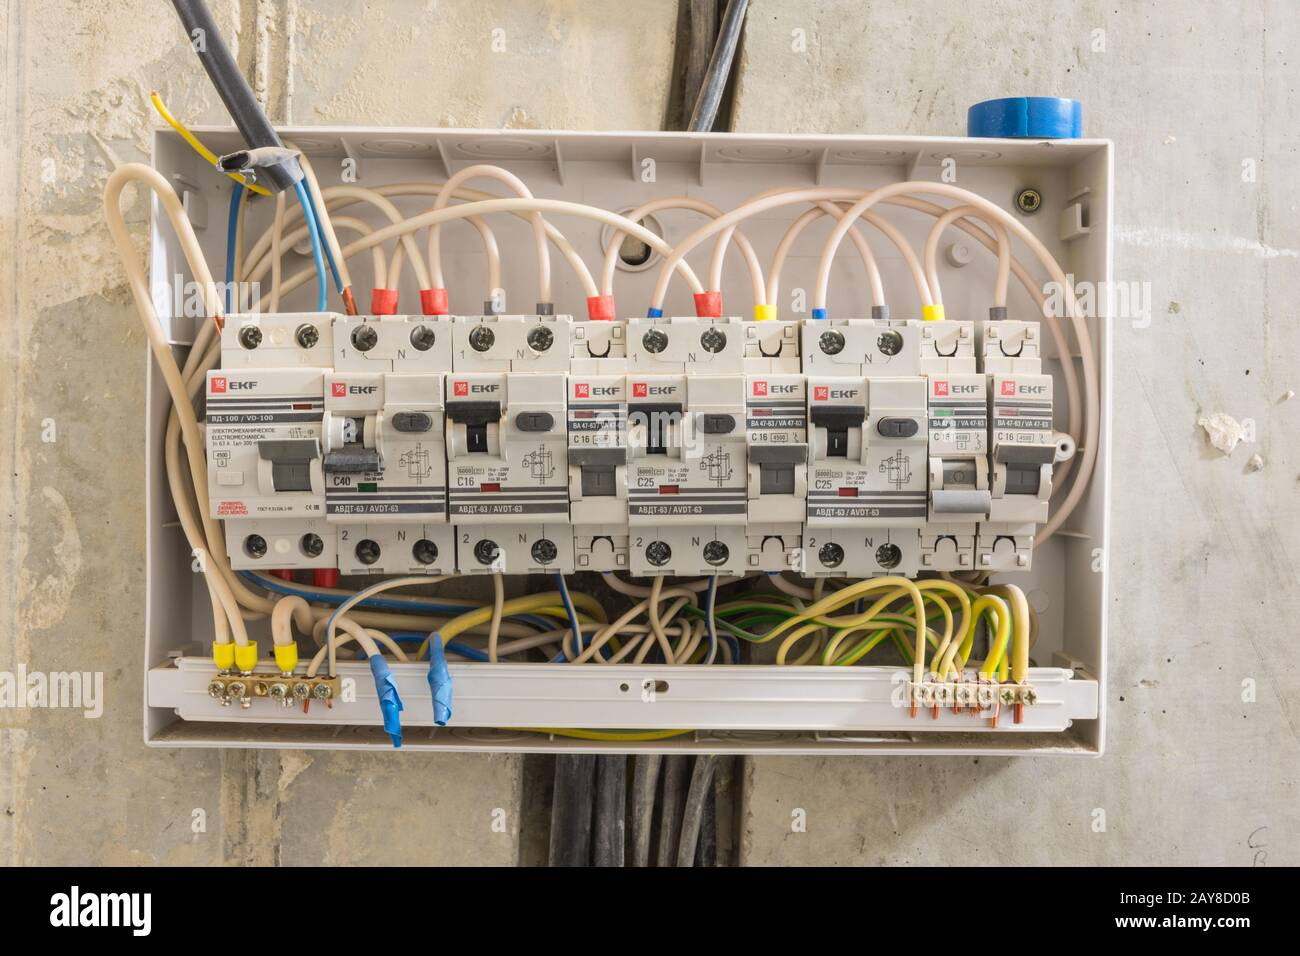 Electric Board In The Apartment In Which Differential Automata And Circuit Breakers Are Installed Stock Photo Alamy